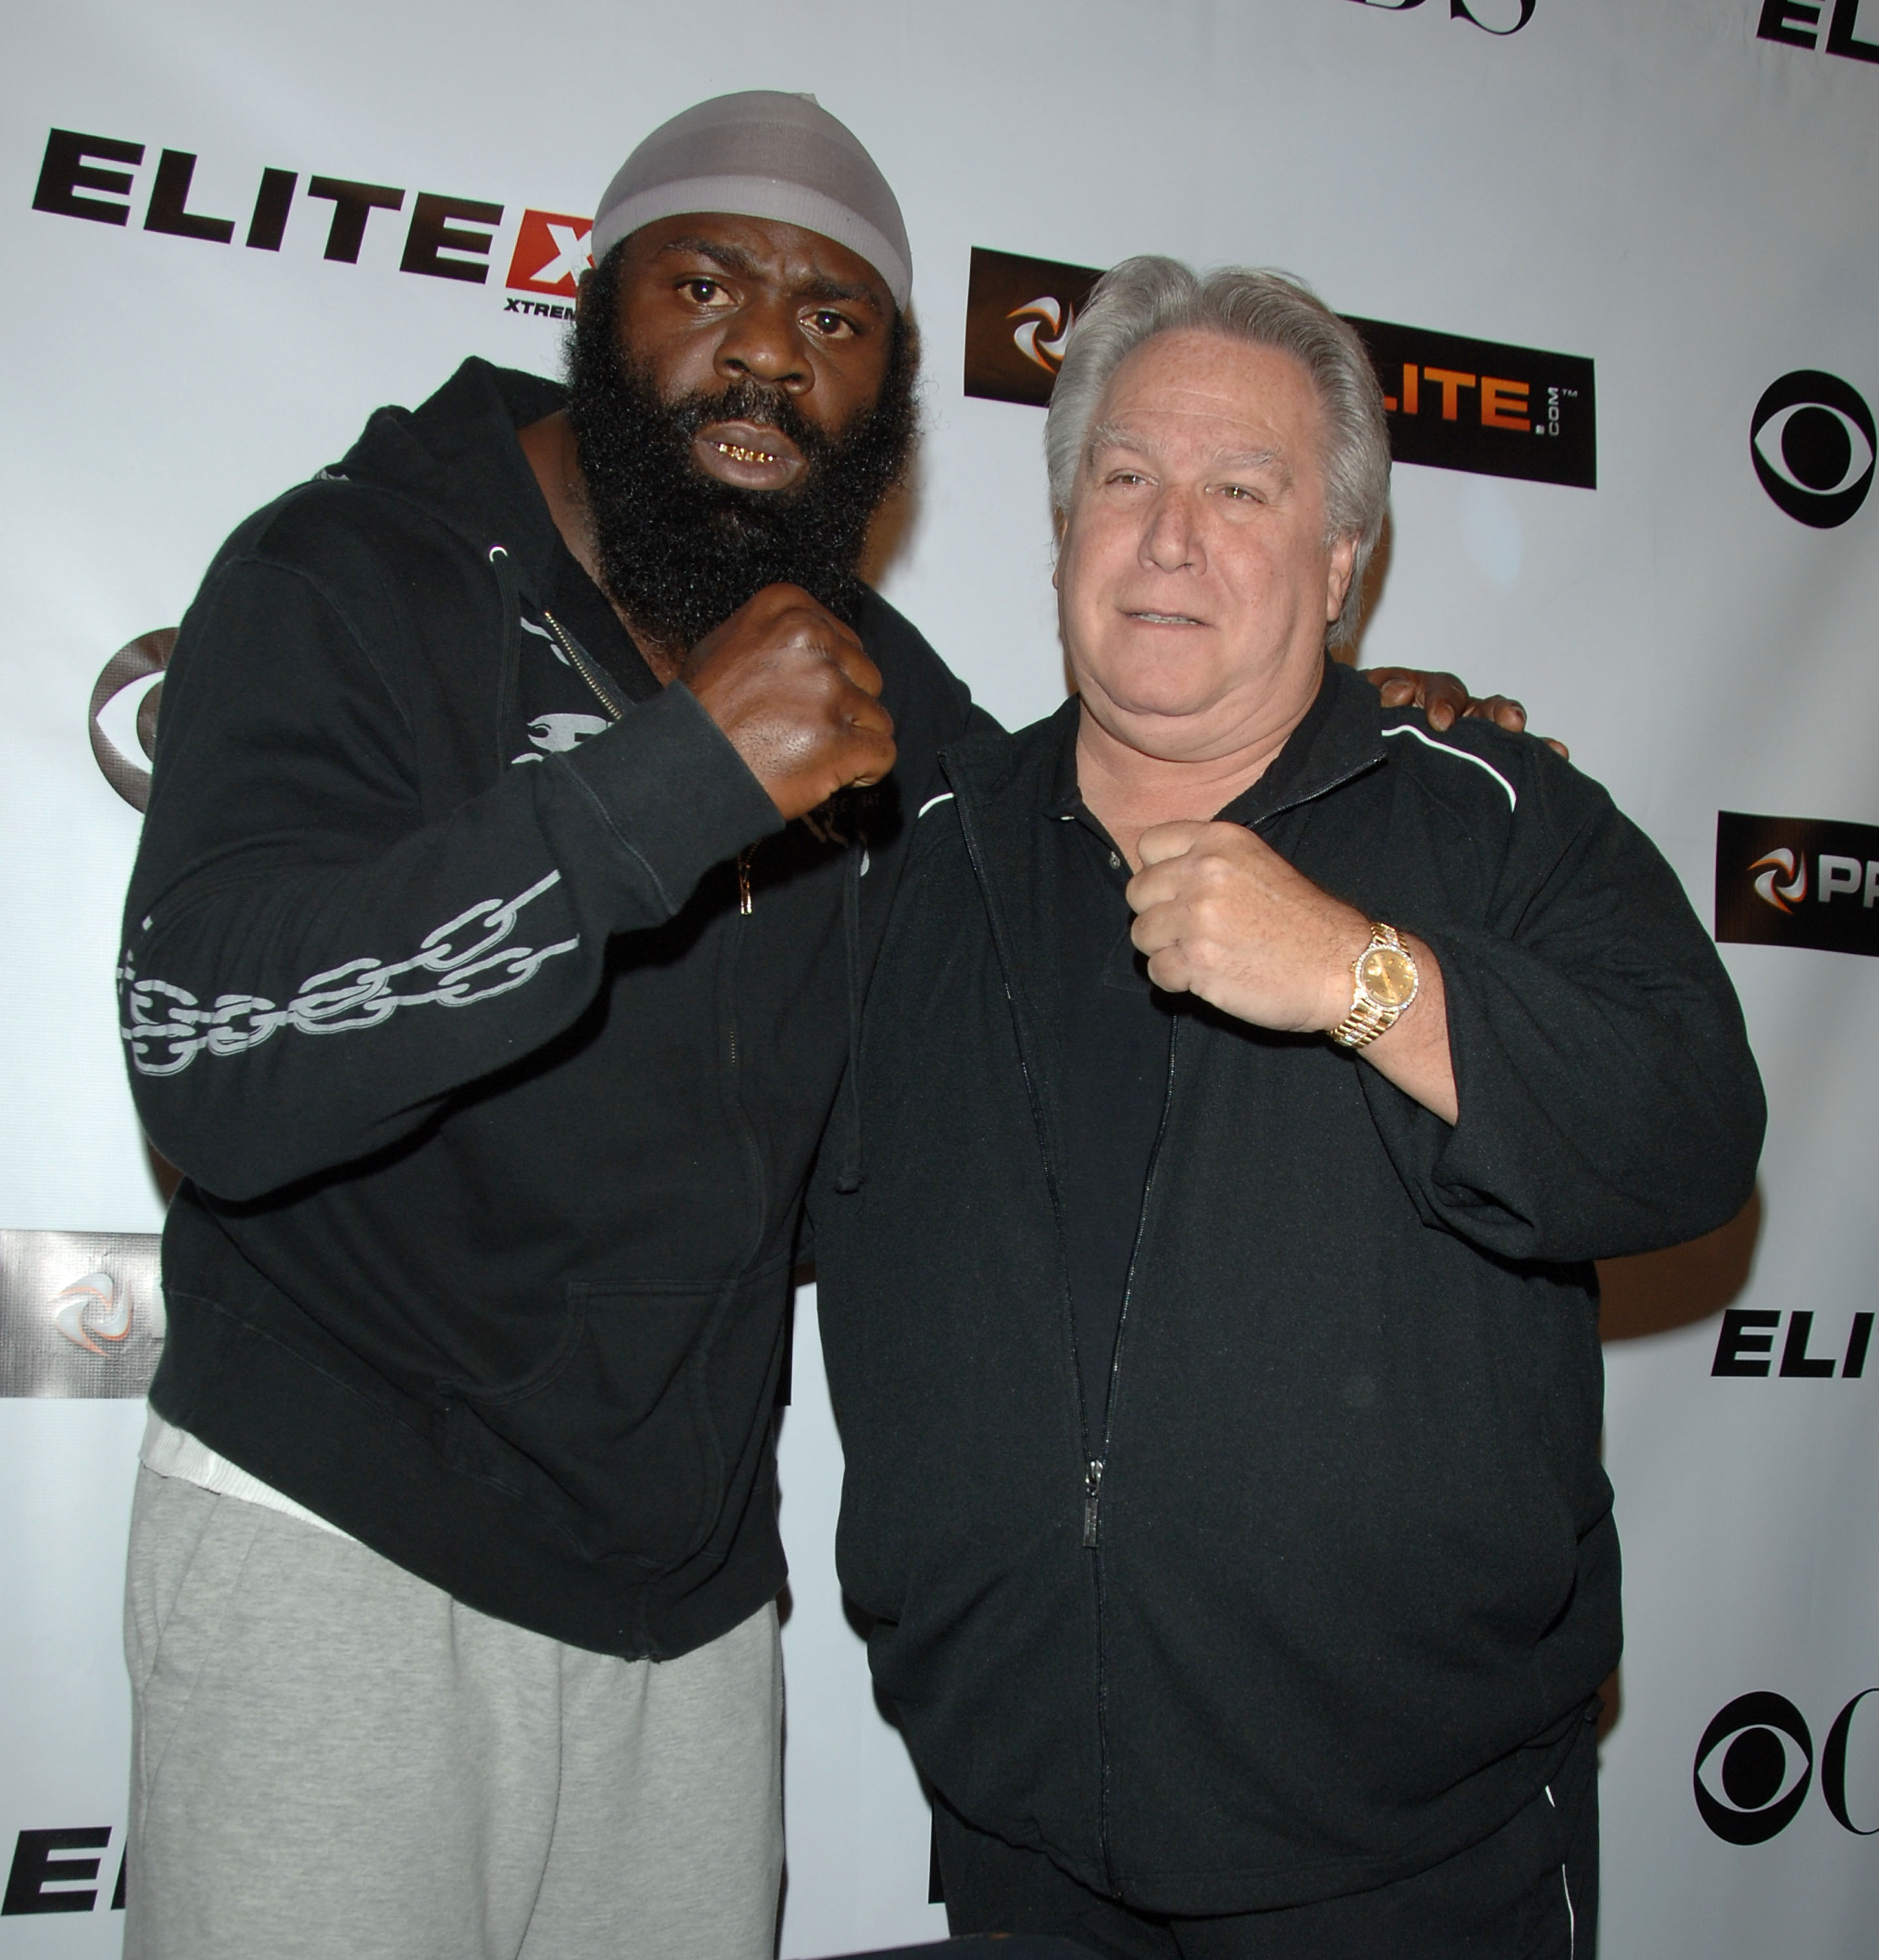 STUDIO CITY, CA - MAY 19:  MMA fighter Kimbo Slice (L) and Live Events President, Elite XC Gary Shaw attend CBS's 'Elite XC Saturday Night Fights' Press Conference at CBS Radford Studios on May 19, 2008 in Studio City, California.  (Photo by Stephen Shuge